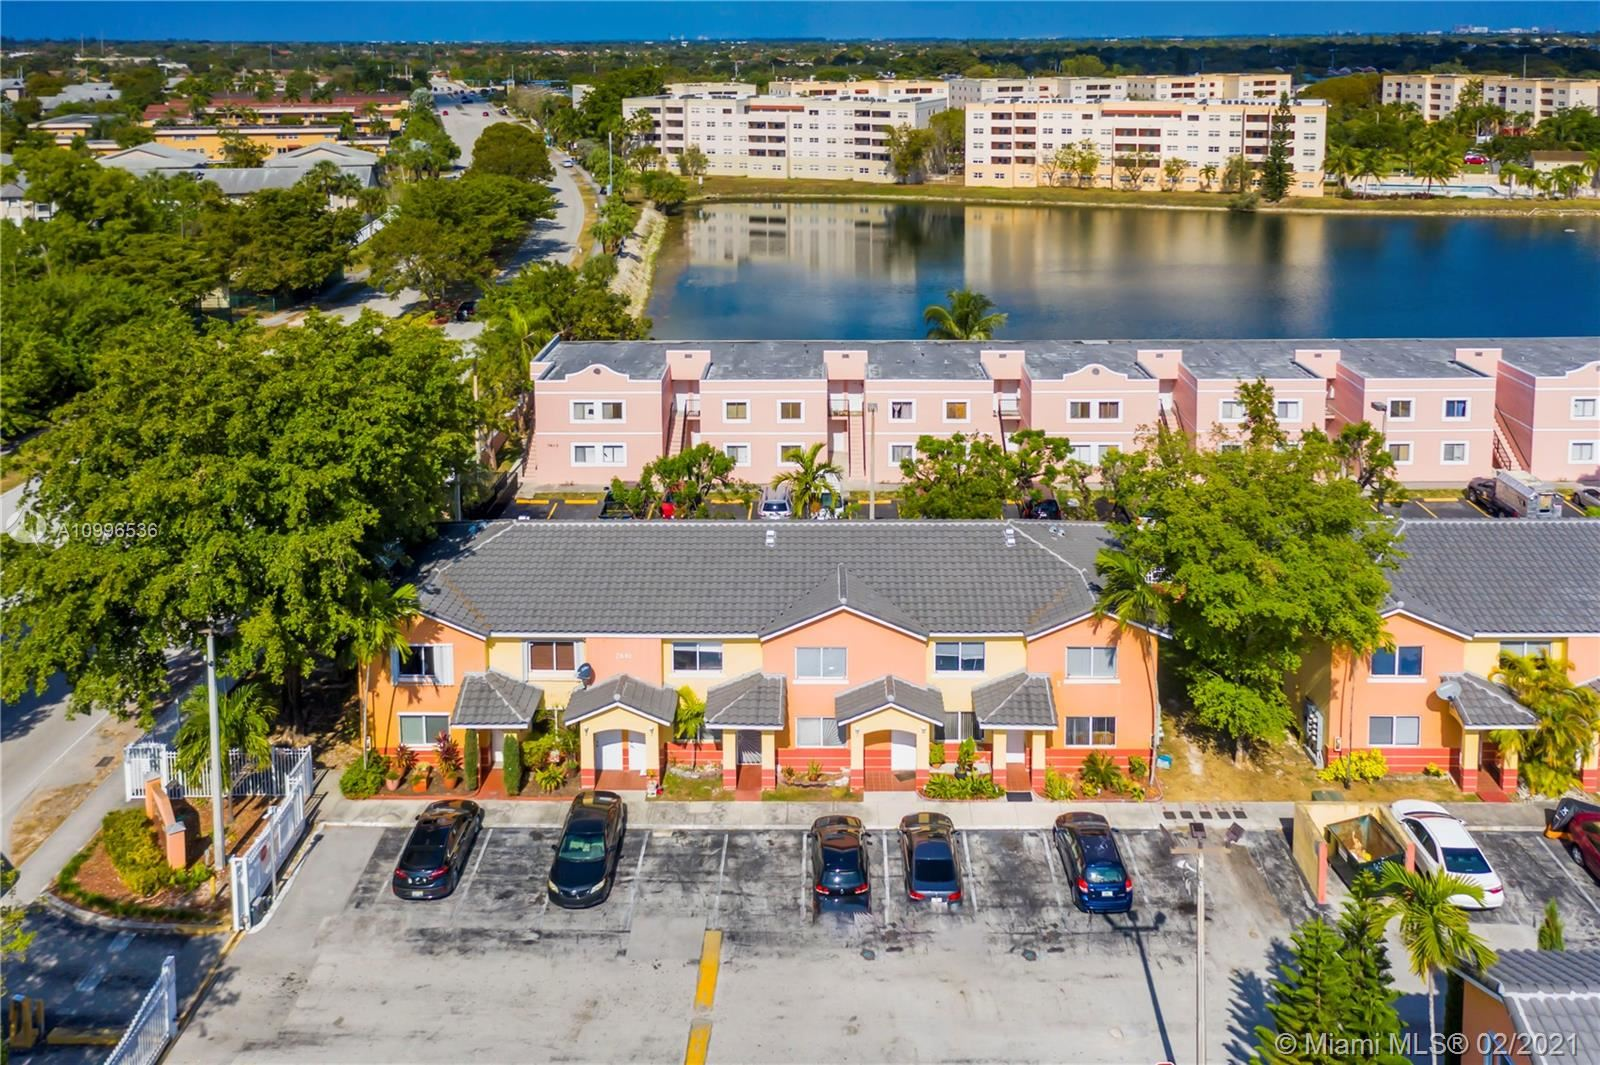 7841 SW 152nd Ave #5035, Miami, FL 33193 - #: A10996536